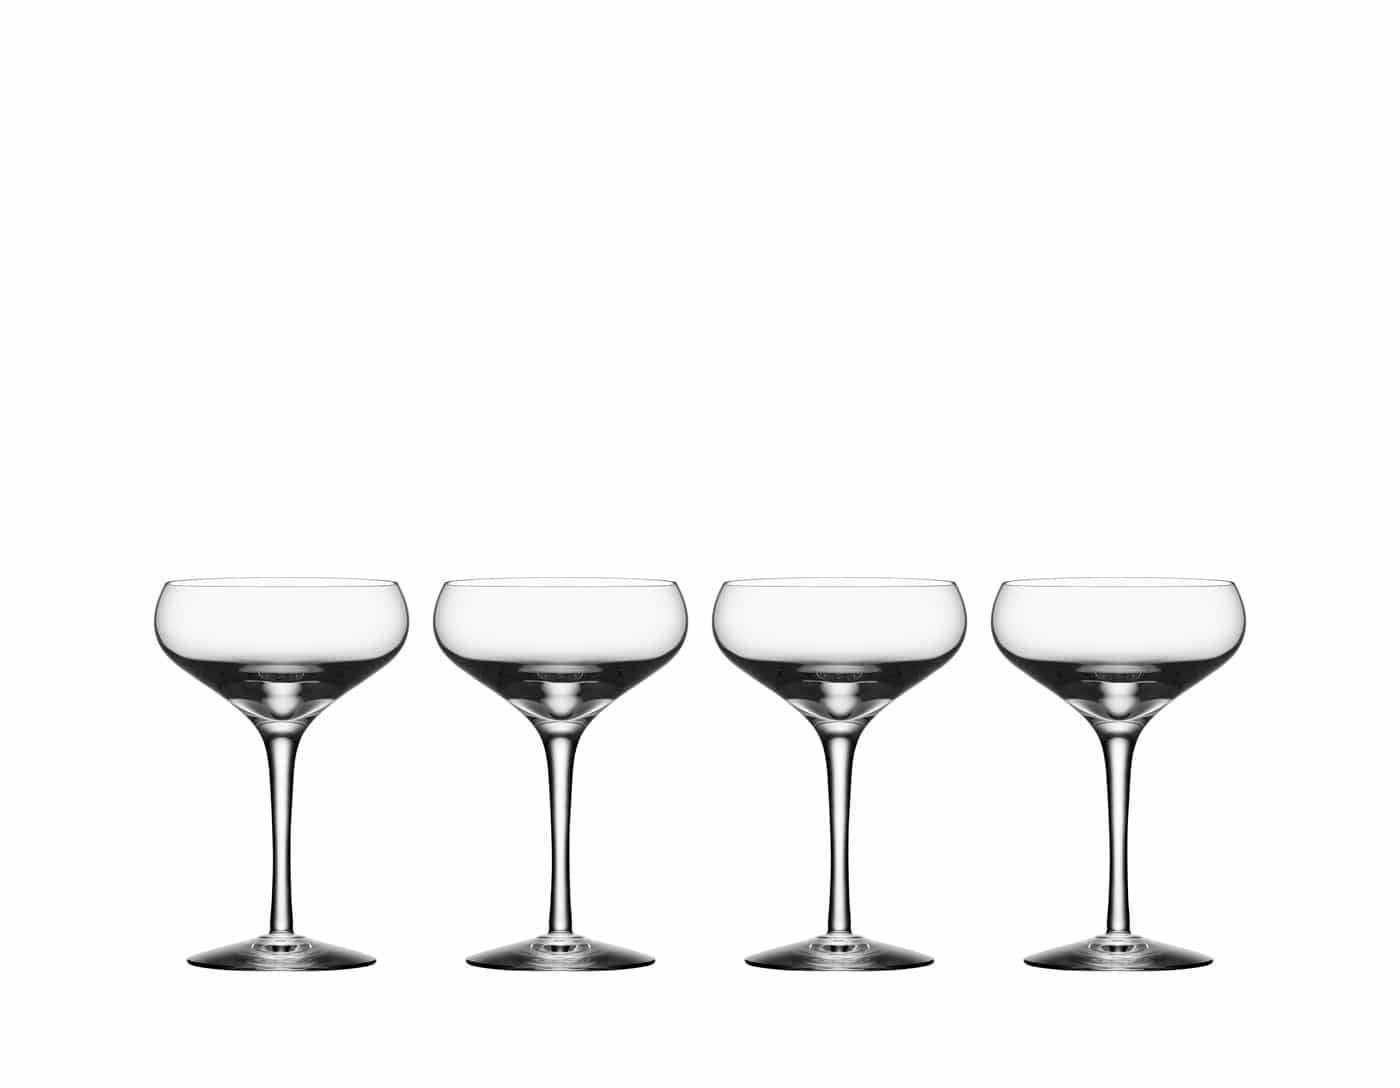 Orrefors More Coupe SHAMPANJALASIT 4- Pack